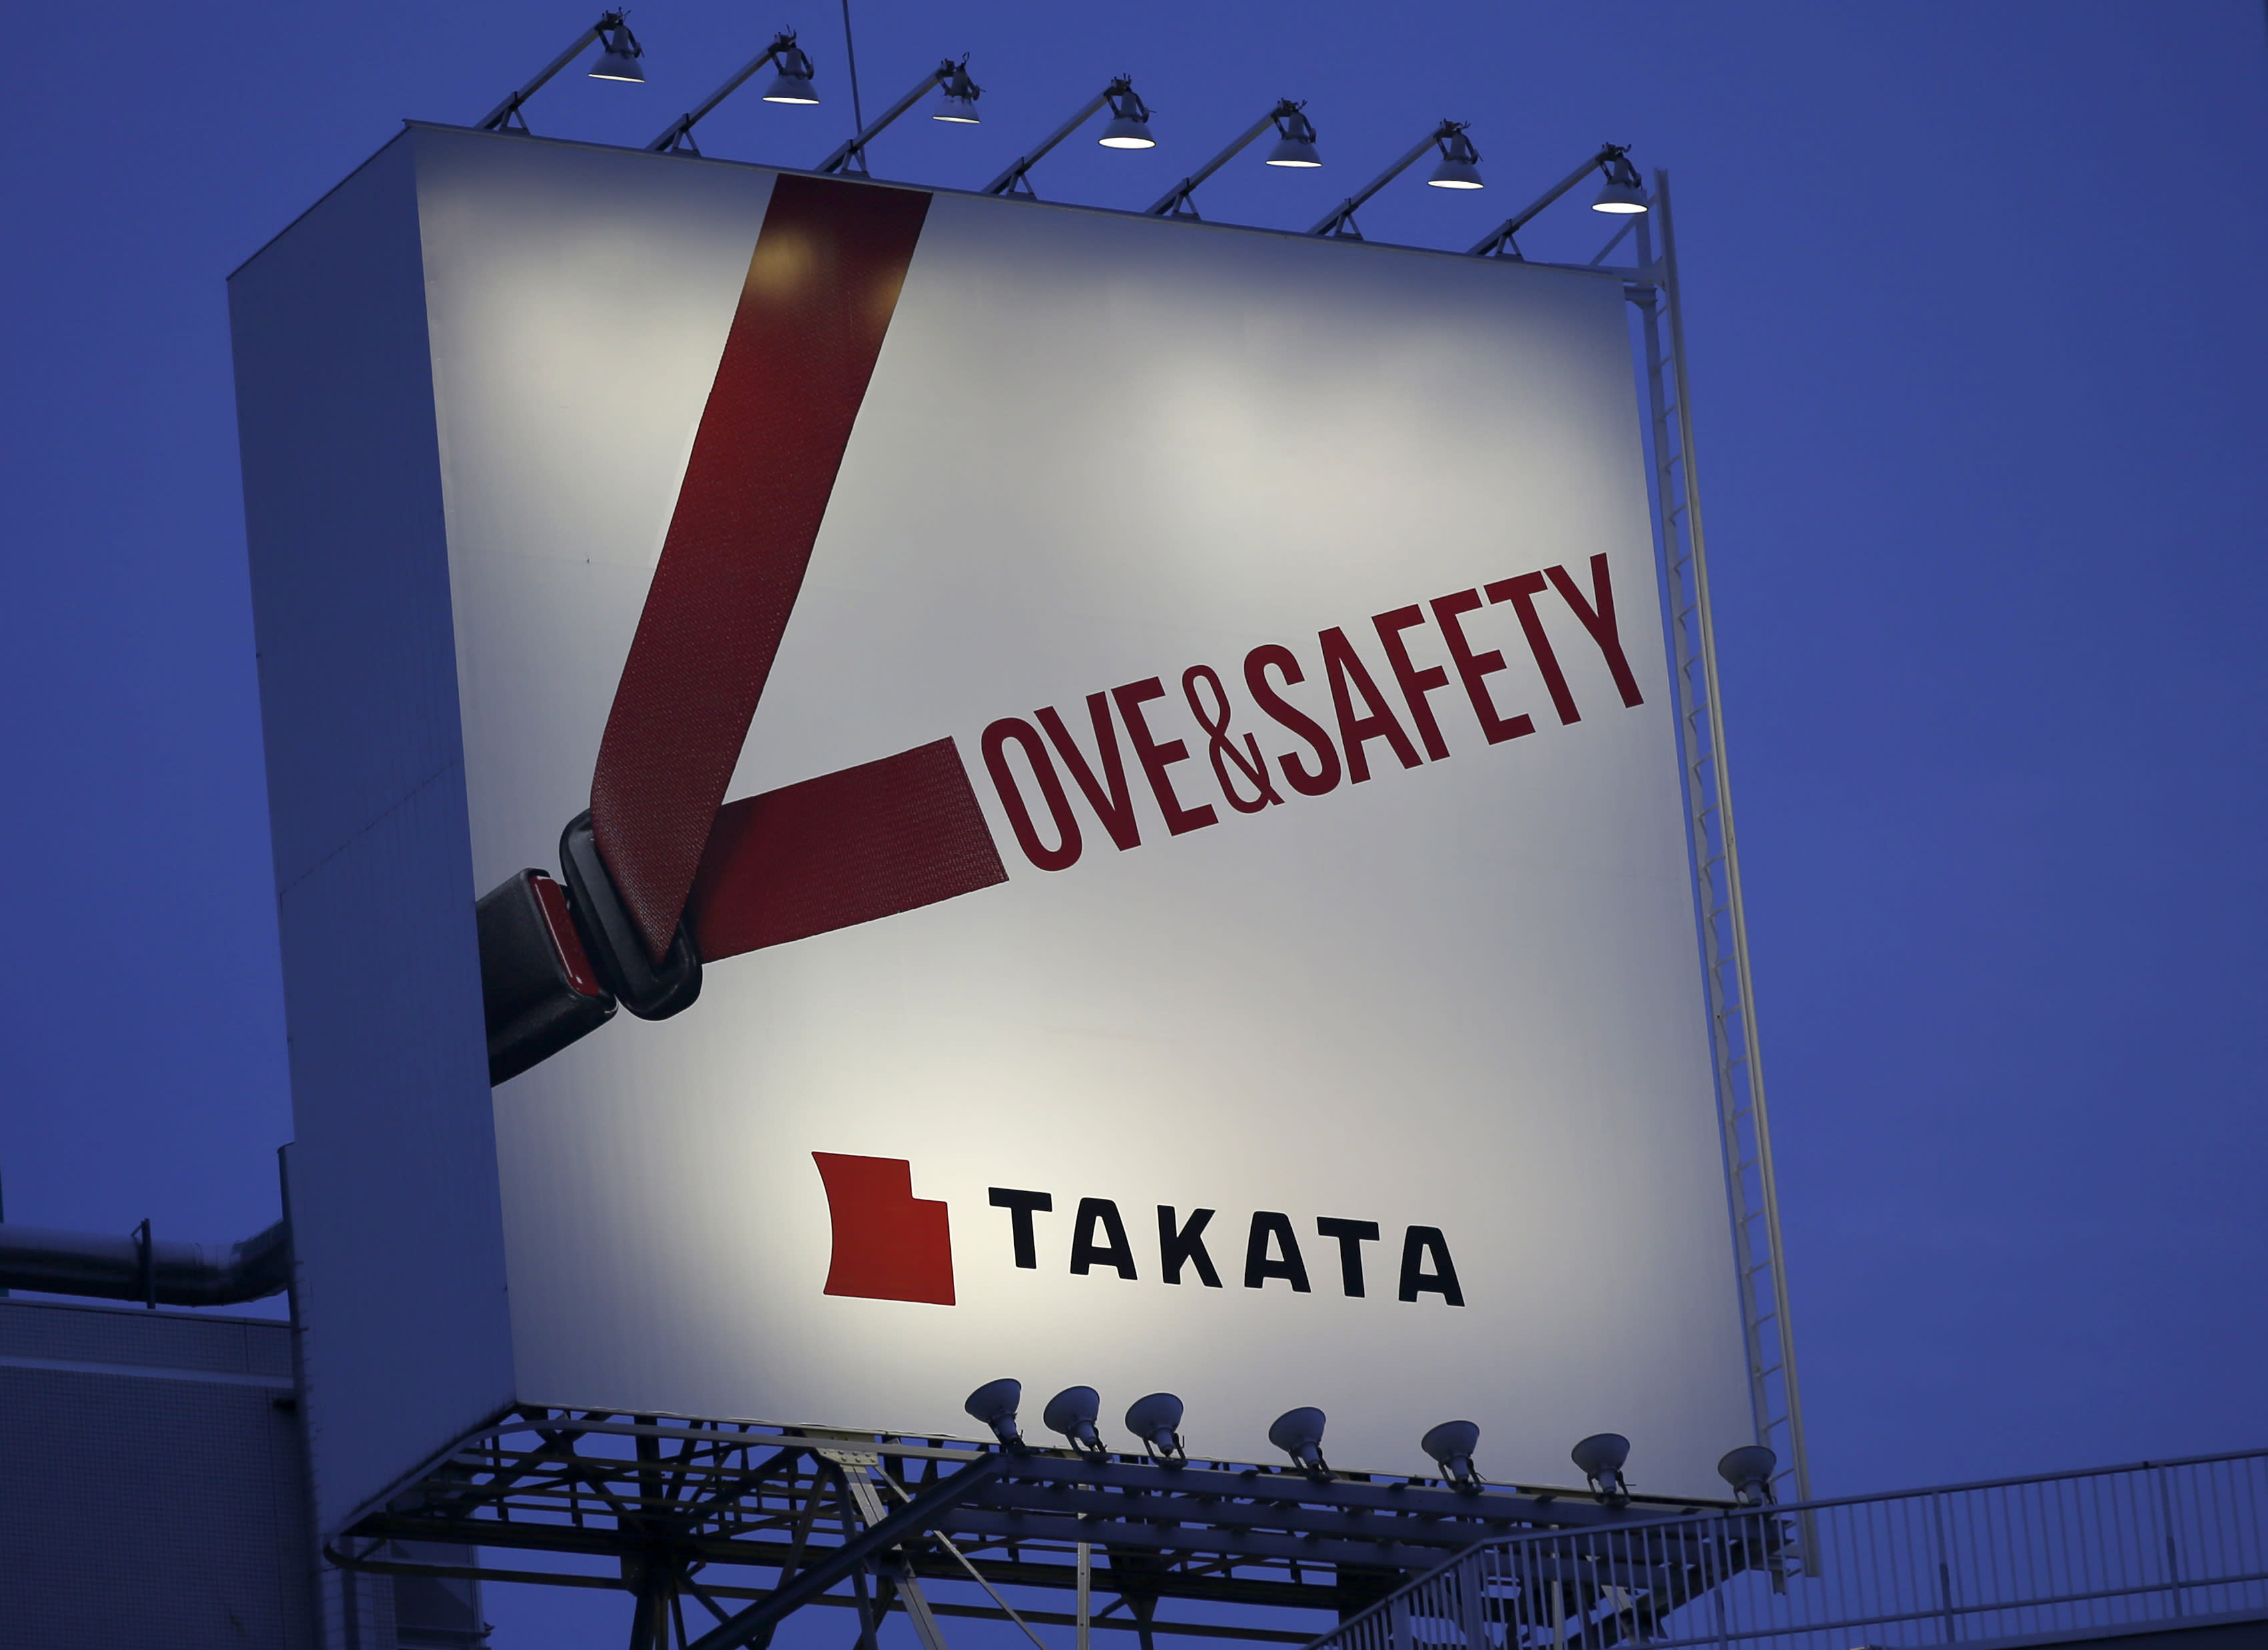 Here's everything we know about Takata and the largest recall in US automotive history